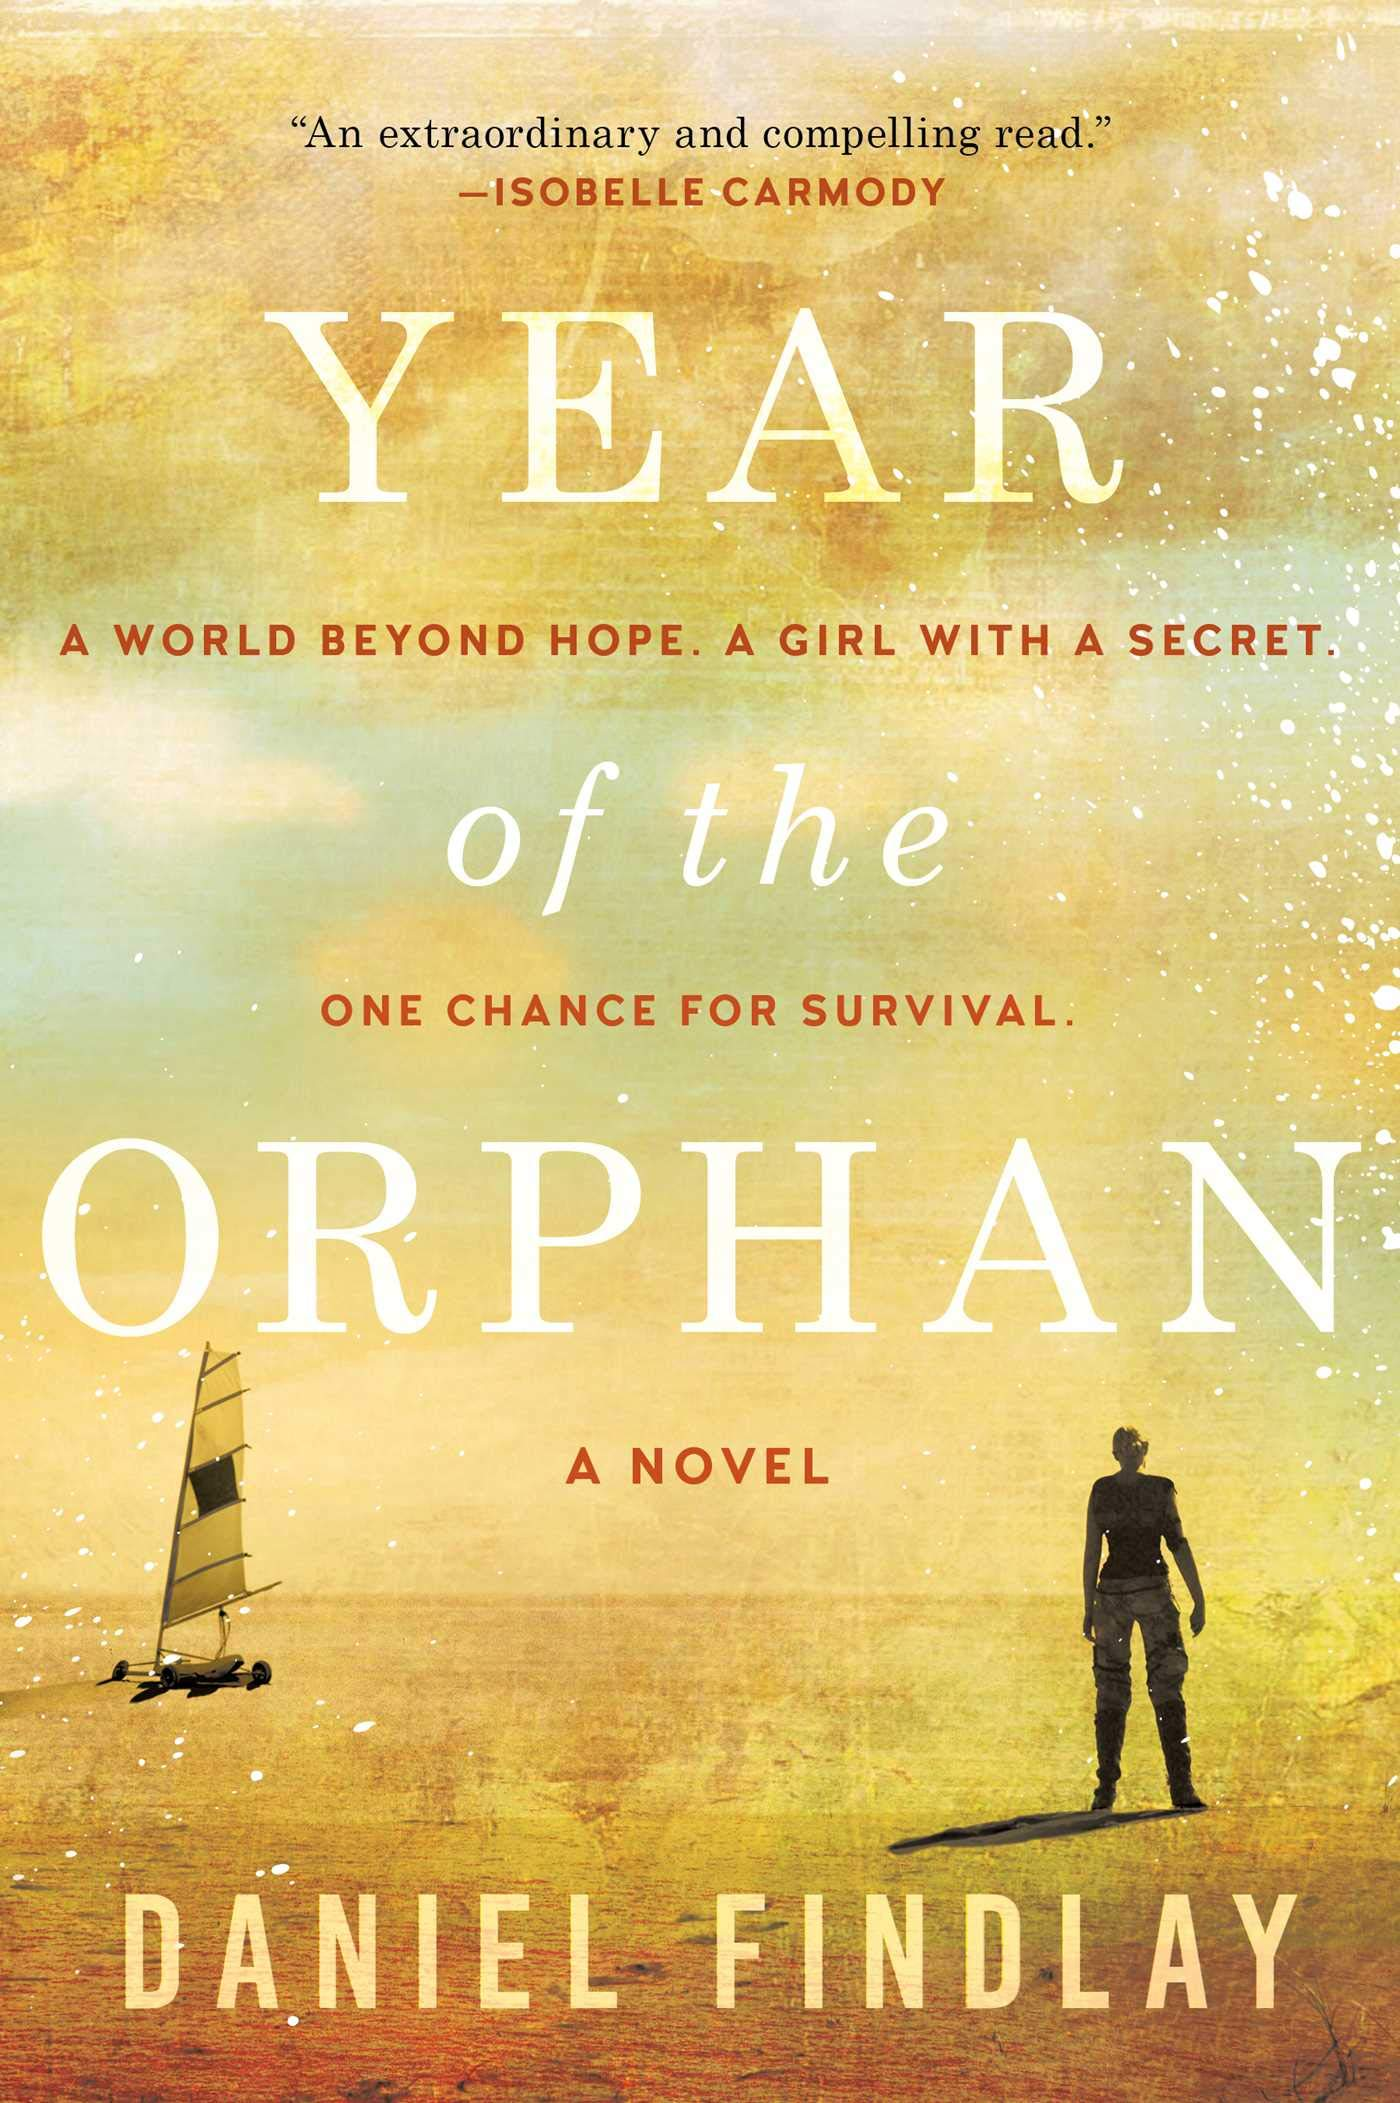 Year of the Orphan - US Edition - Year of the Orphan, complete with a brilliant new cover, arrives in the US on May 7 and my newly minted Amazon Author Page showcases exactly why I usually stick to writing instead of video! If you'd like to check out my cinematic masterpiece, know more about the book or pick up a copy, just hit the cover image, or here!